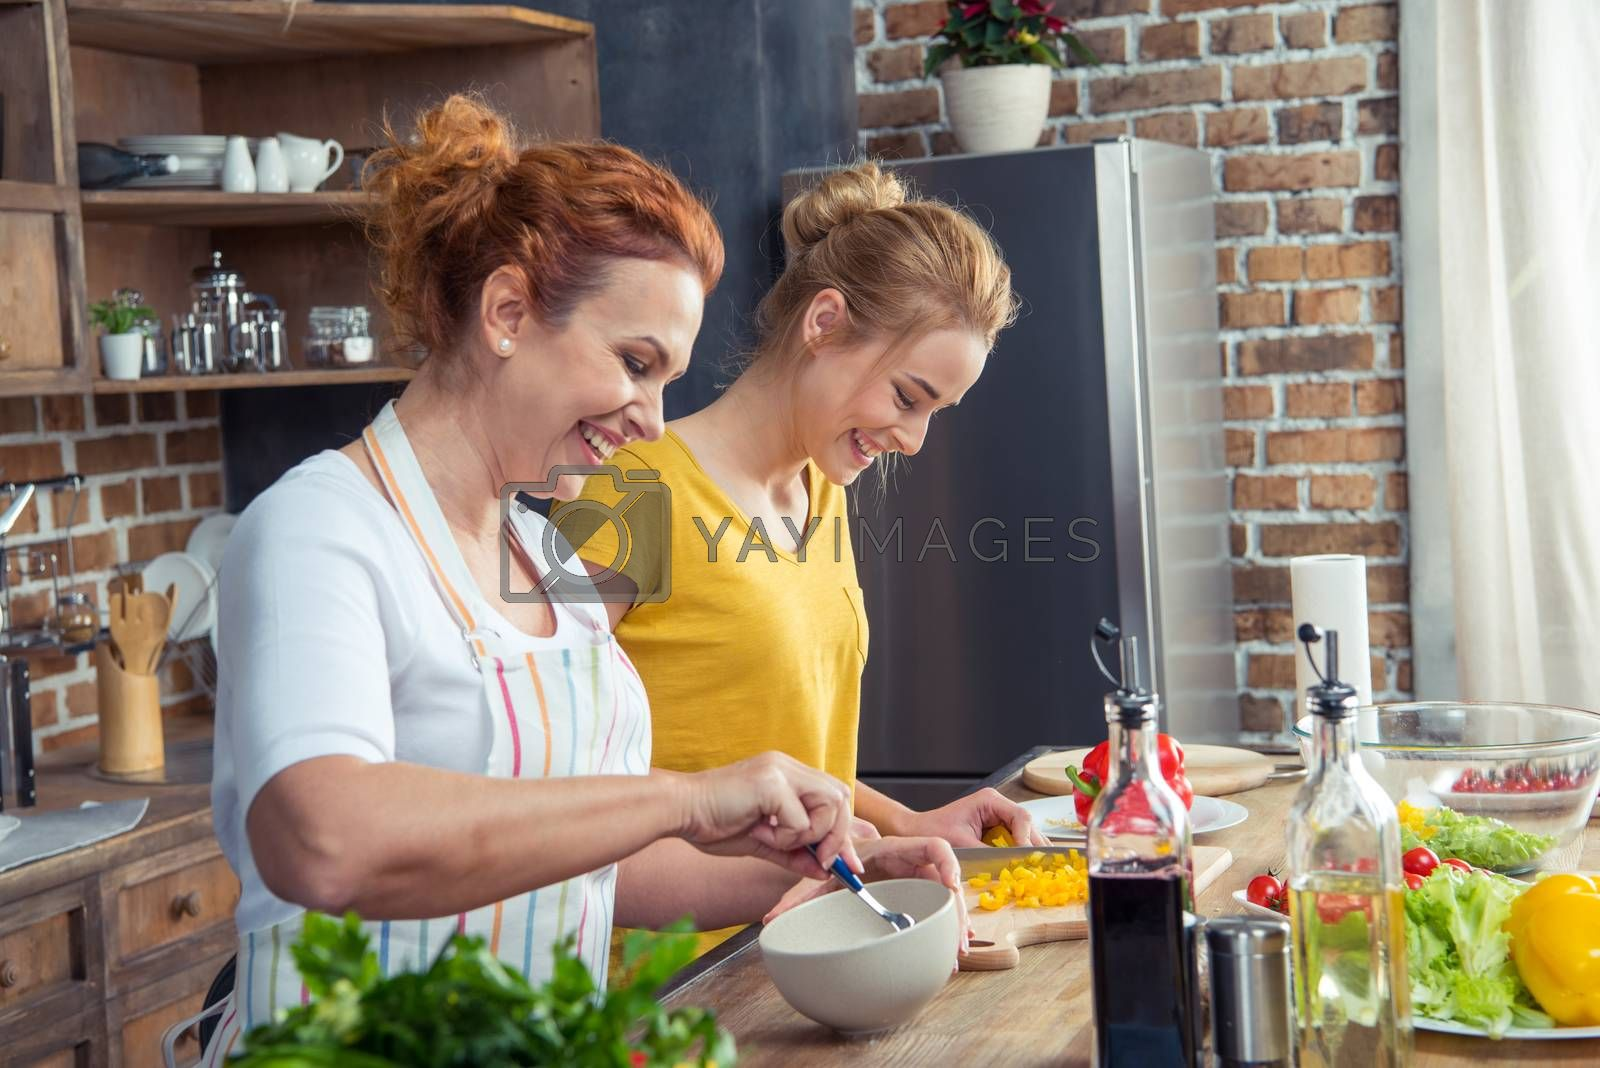 Smiling mother and daughter cooking together in kitchen